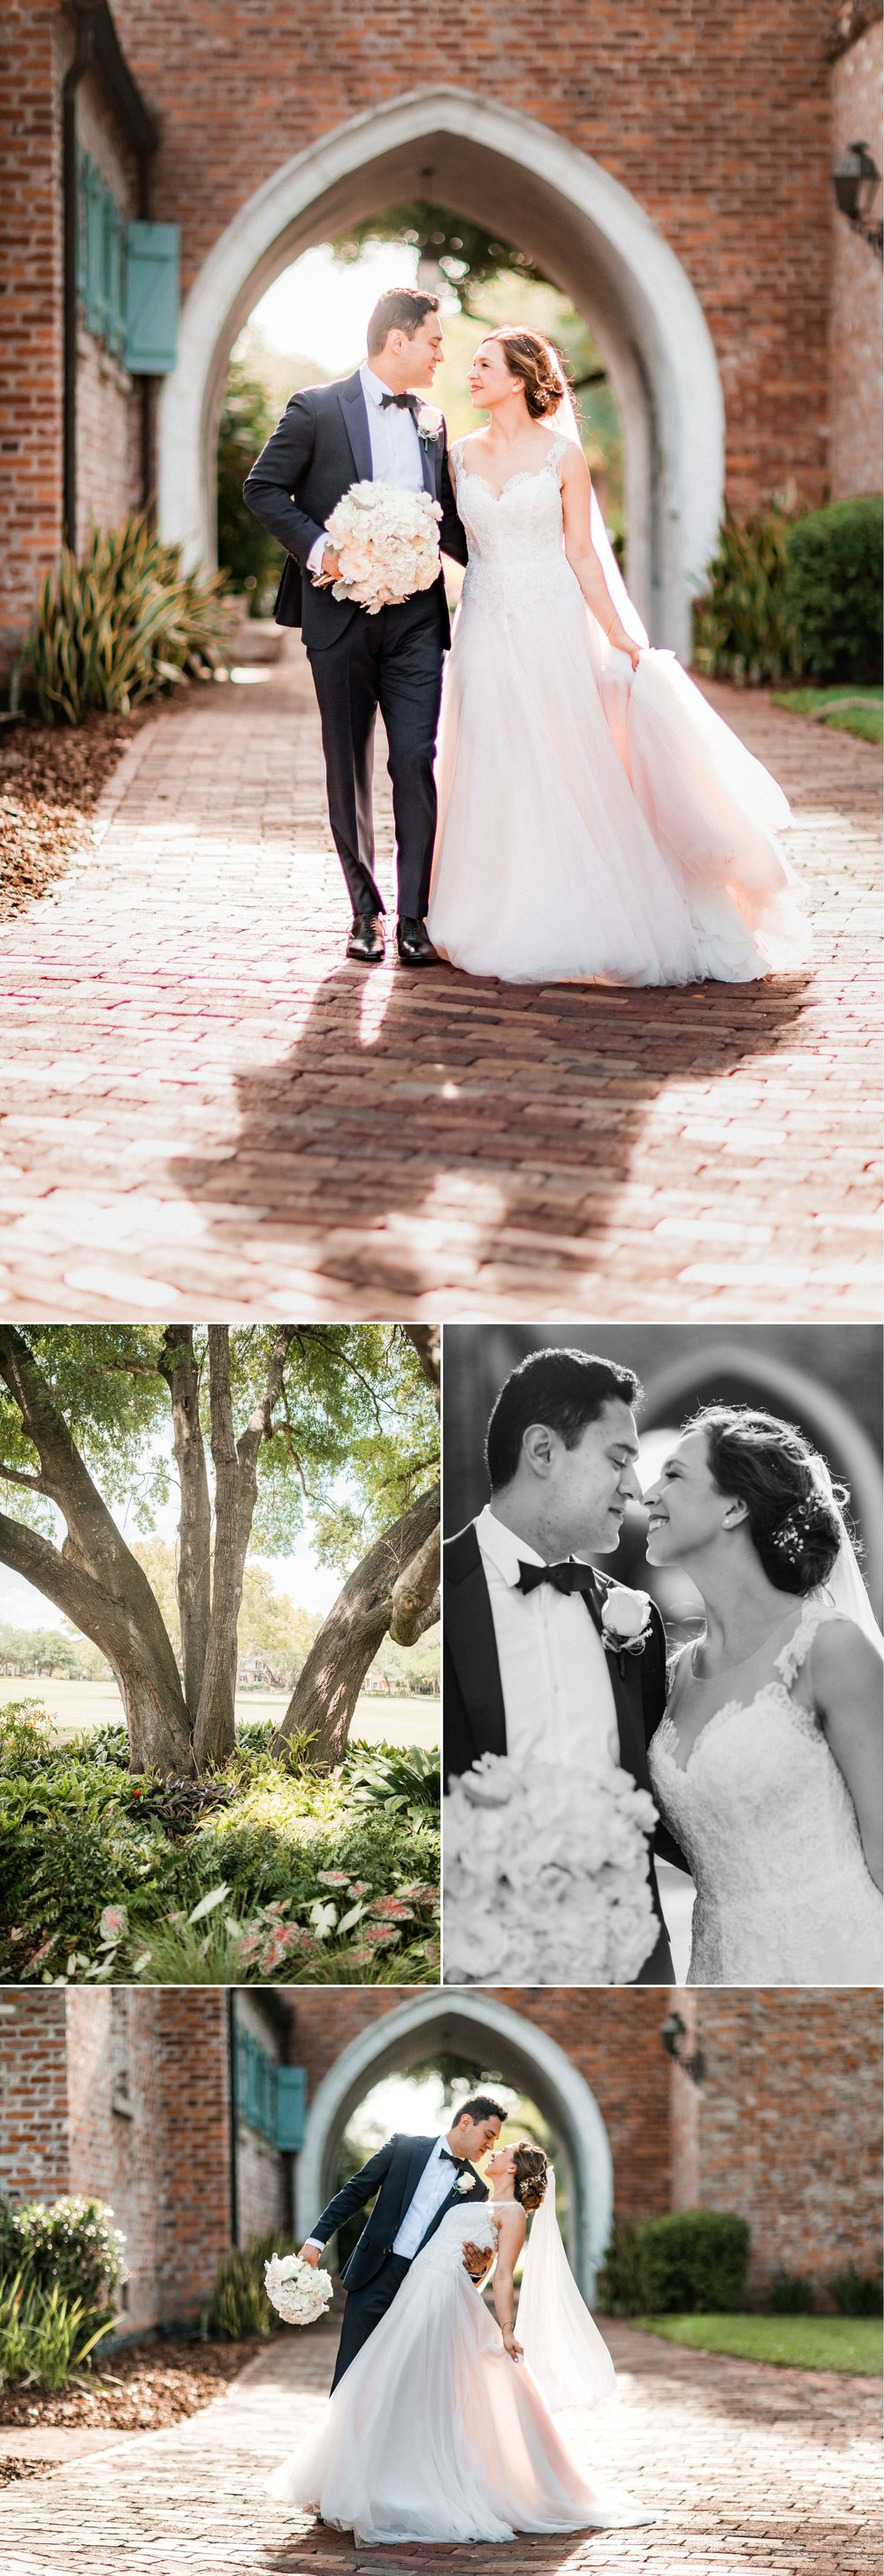 Boho Chic Blush Gold Wedding at Casa Feliz Winter Park -Andres + Elya 172.jpg